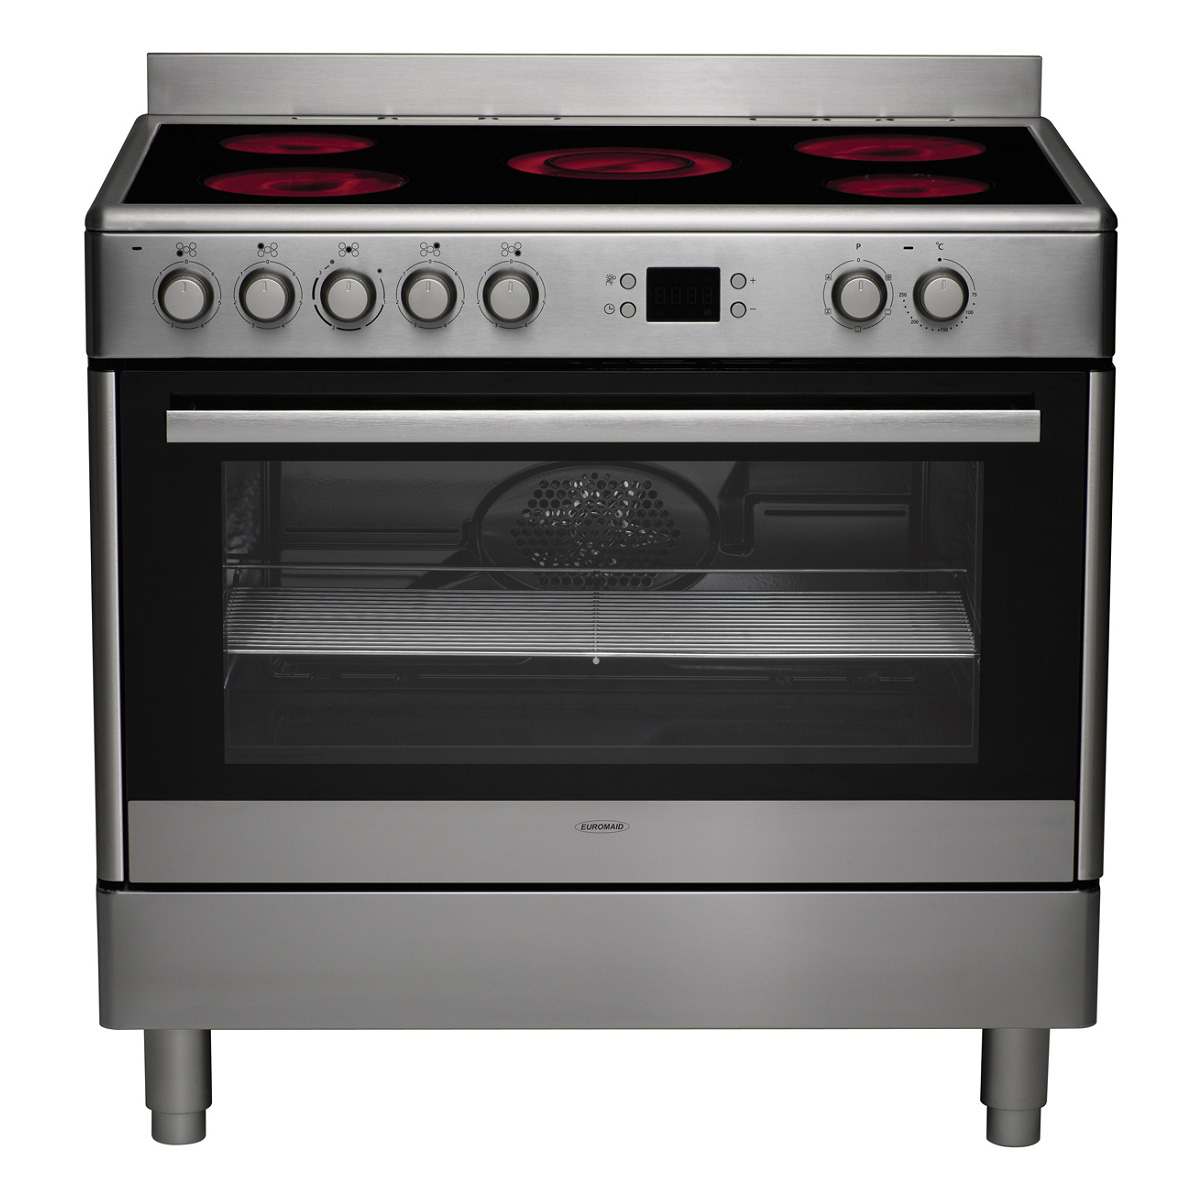 Euromaid CS90S Freestanding Electric Oven/Stove